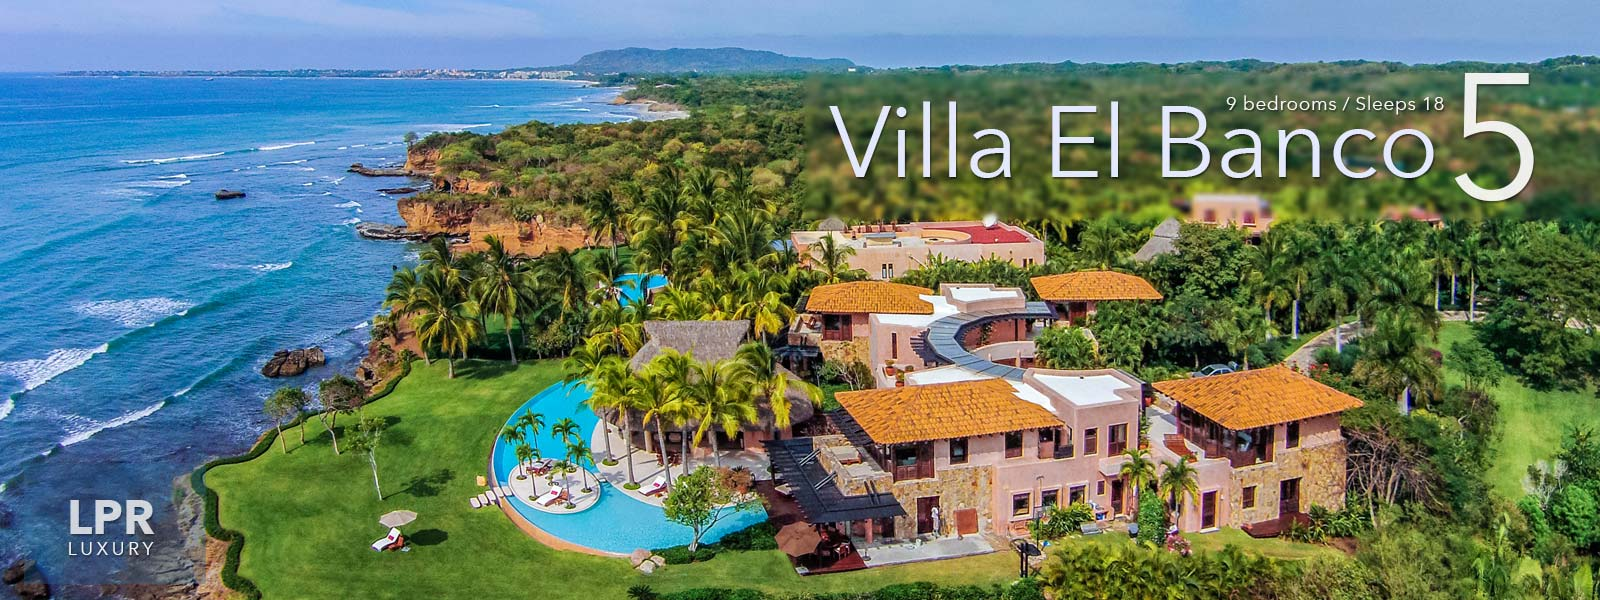 STAFF PICKS: 5 PUNTA MITA VACATION RENTALS WE LOVE AND WHY